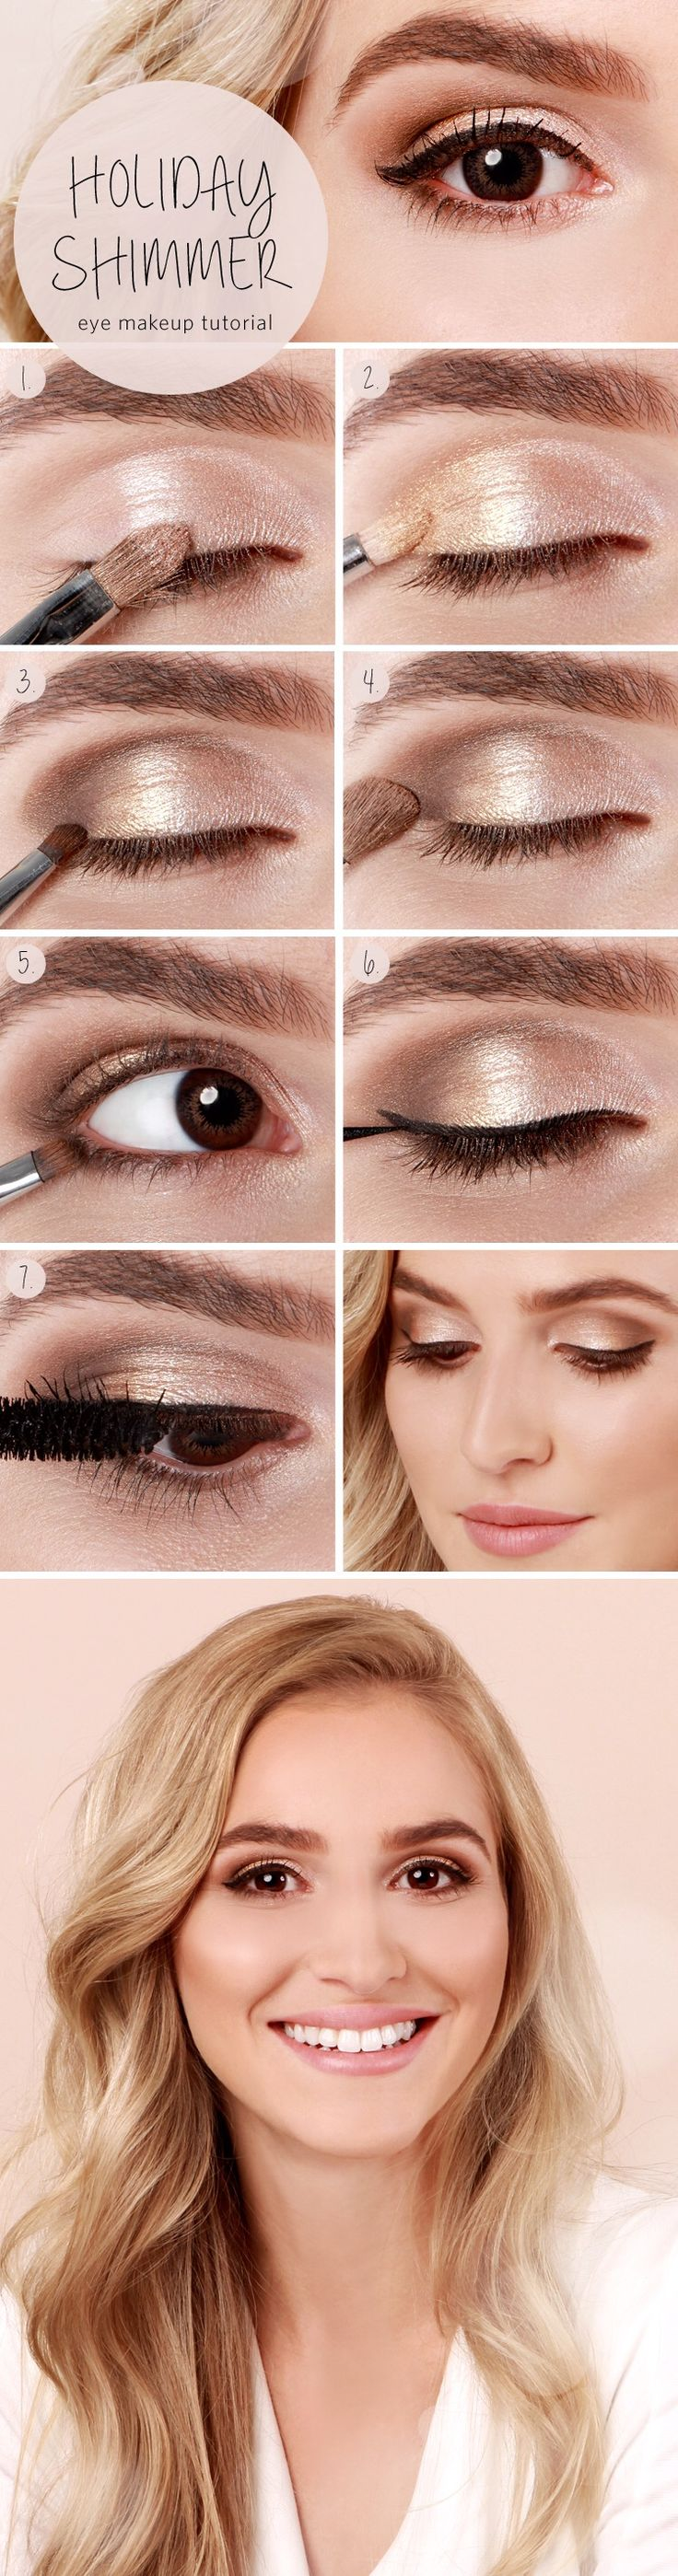 Www.marykay.com/dashby3 Gold Coast & Hazelnut mineral eye shadows with Bronze Eyeliner and Lash Love Lengthening Mascara!